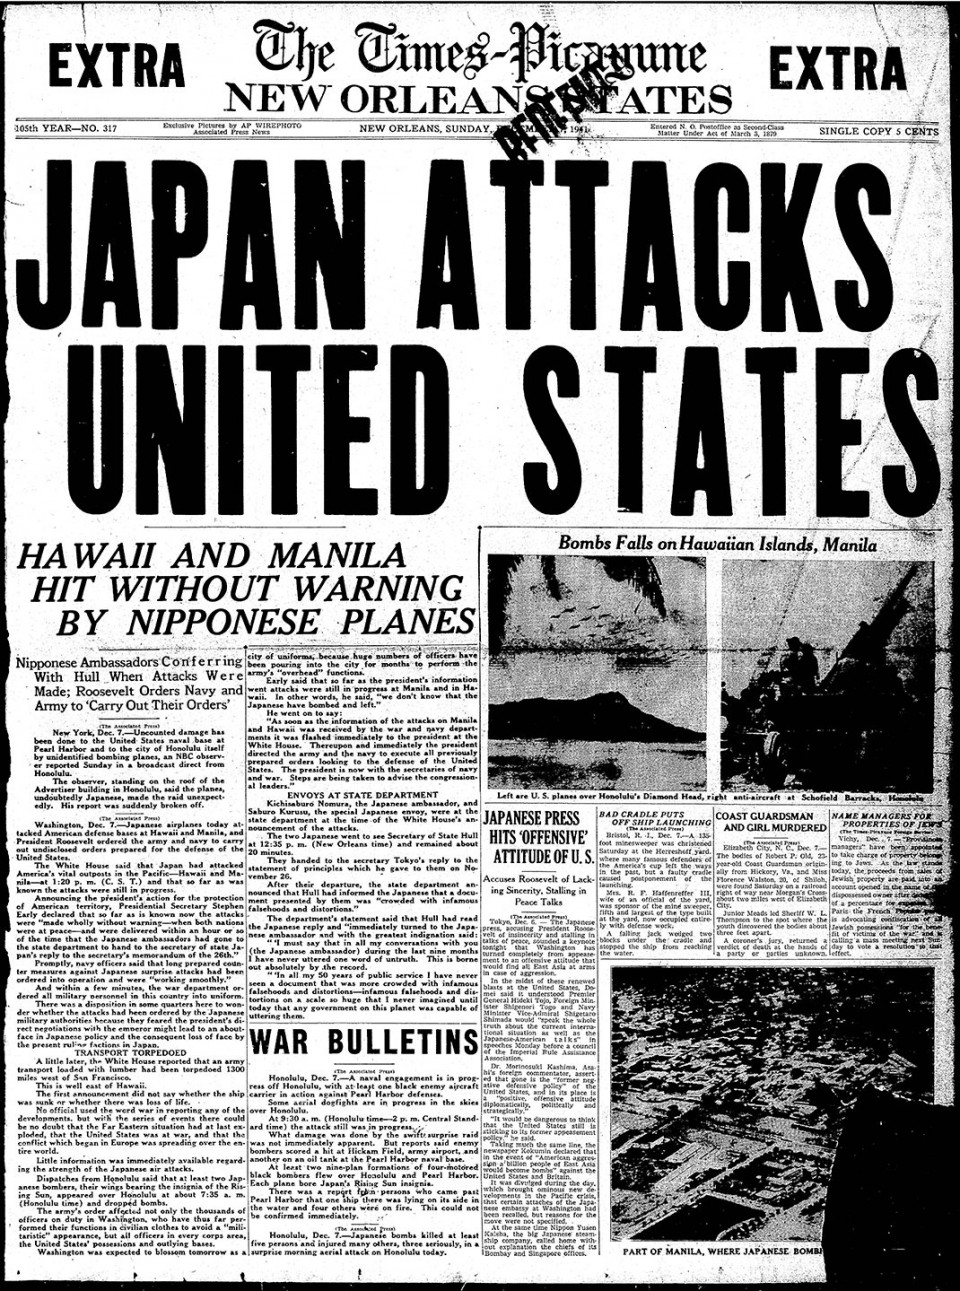 essay on why japan bombed pearl harbor This left americans in a state of extreme anger and aggression to an extent that they declared the world war ii against japan but why did japan attack pearl harbor.